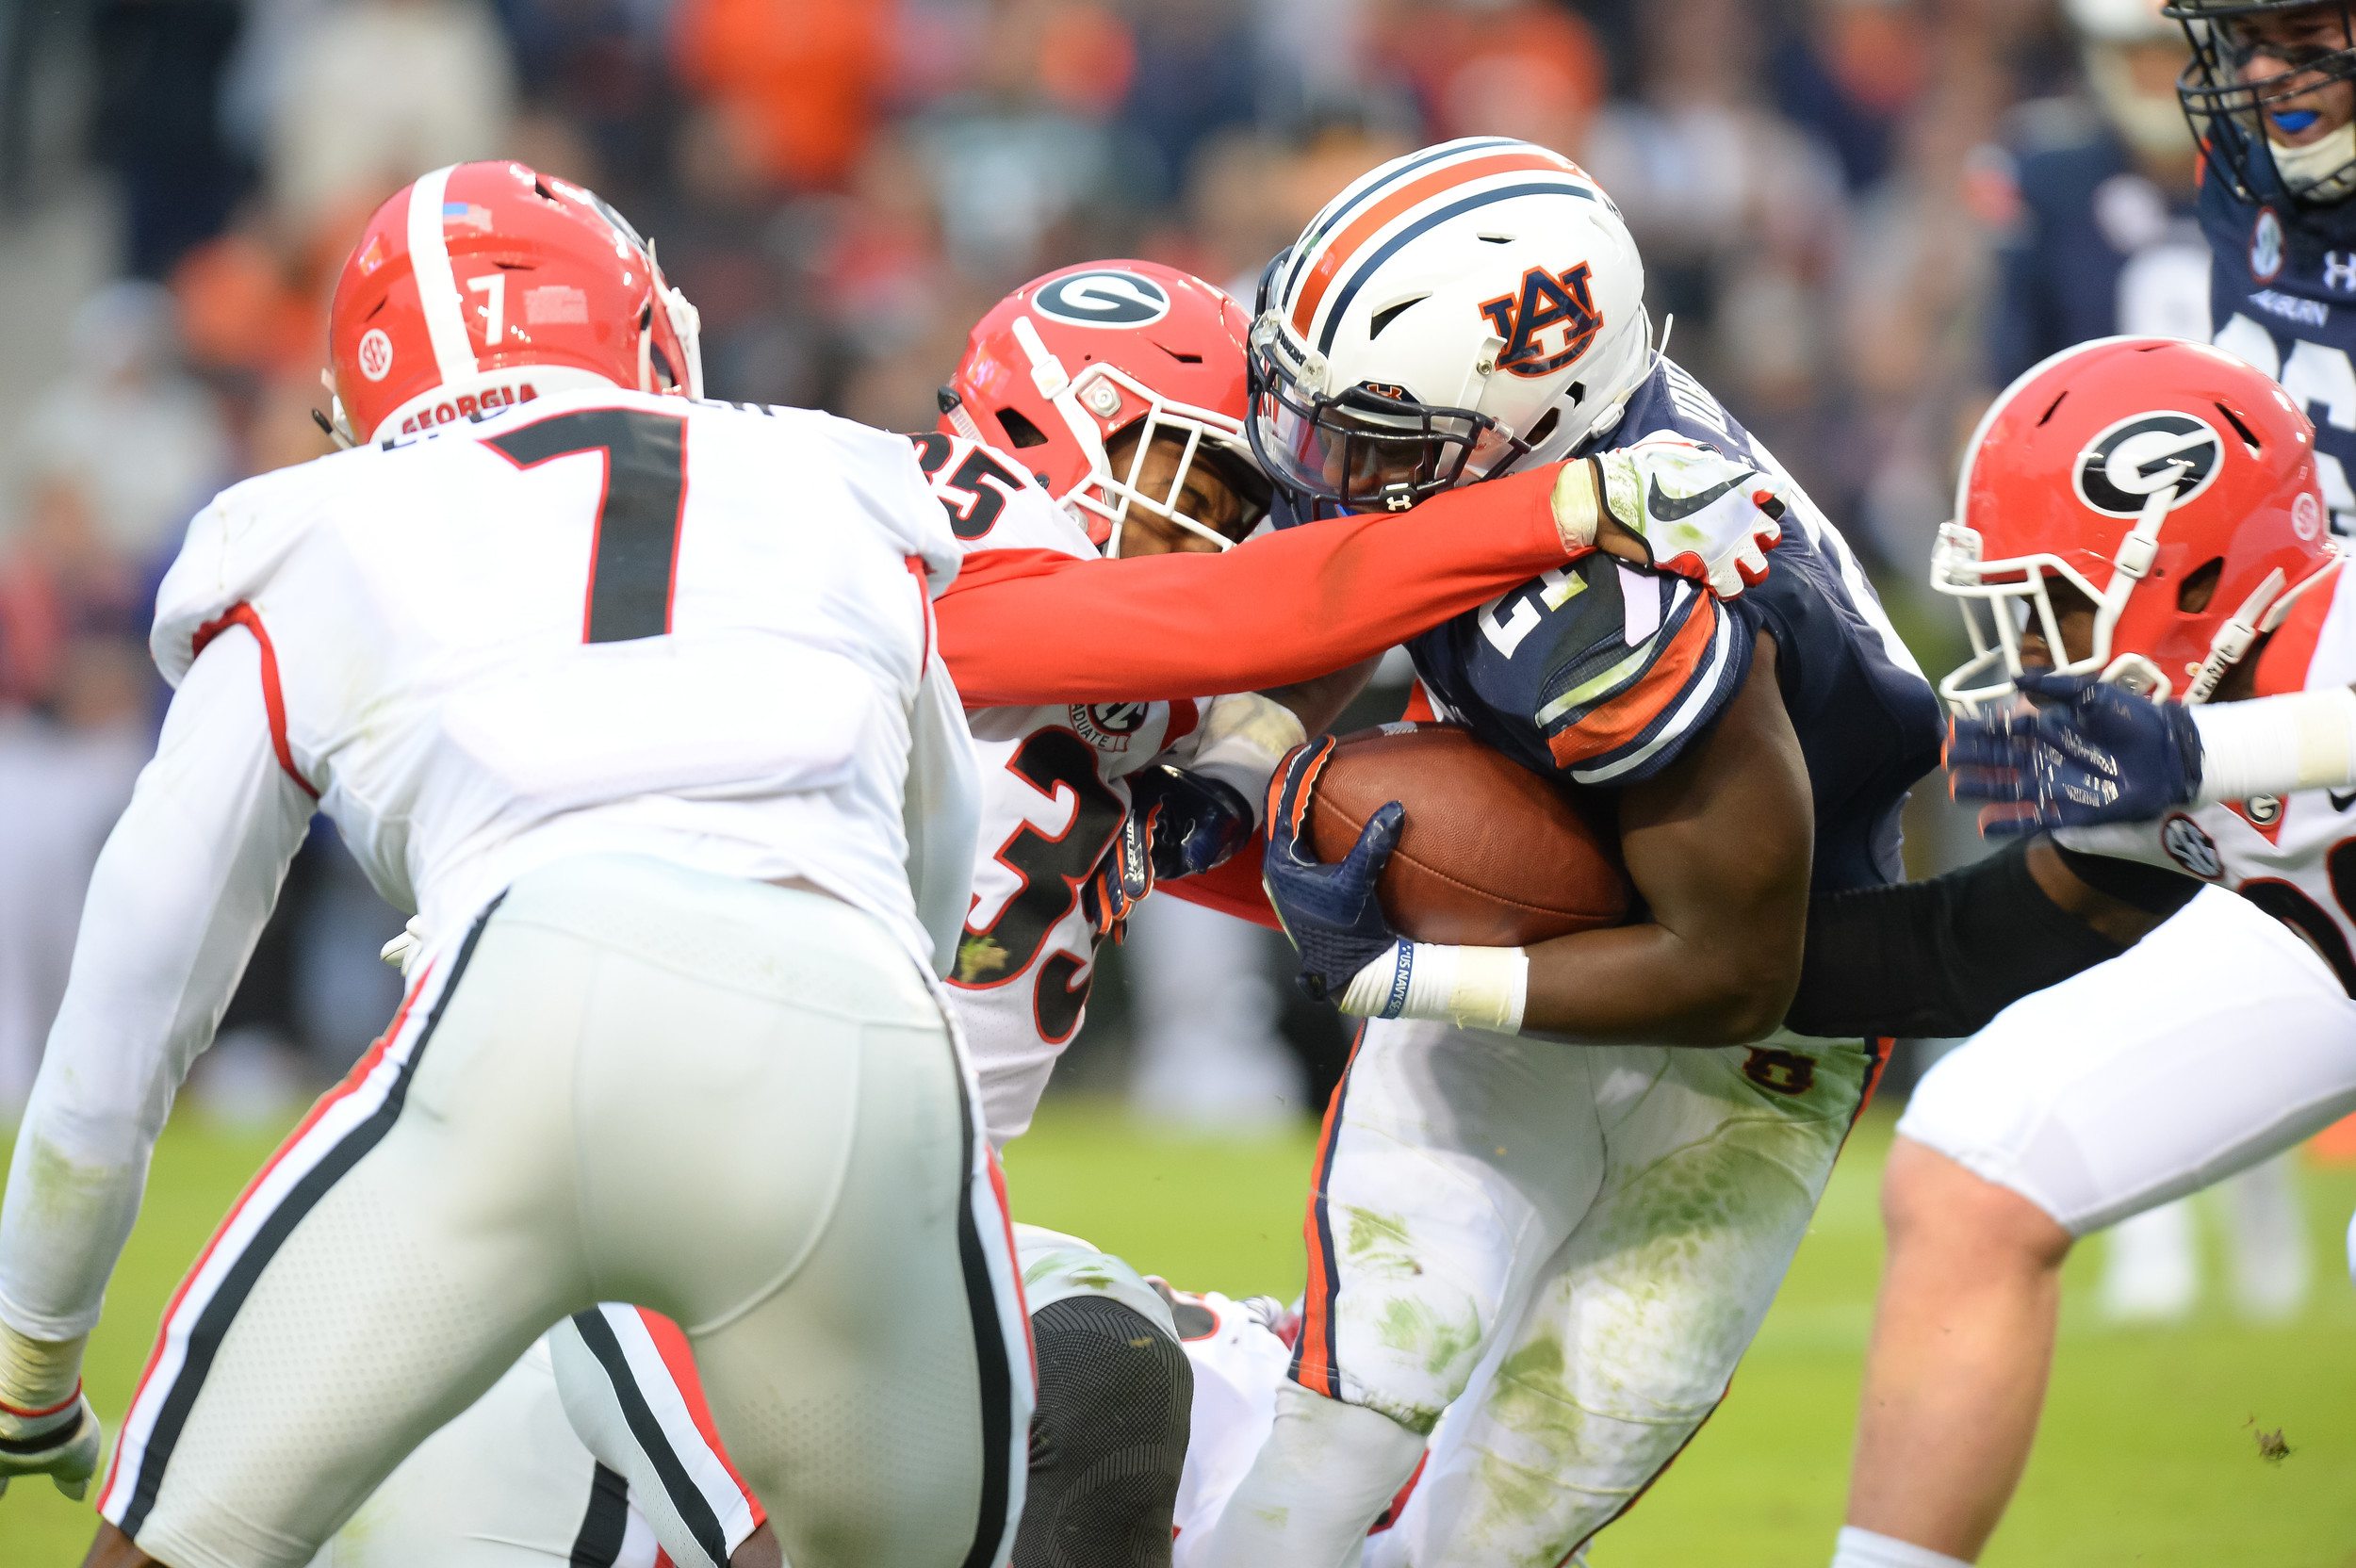 Auburn Tigers running back Kerryon Johnson (21) is tackled by Georgia Bulldogs defensive back Aaron Davis (35) the first half of Saturday's game, at Jordan-Hare Stadium.